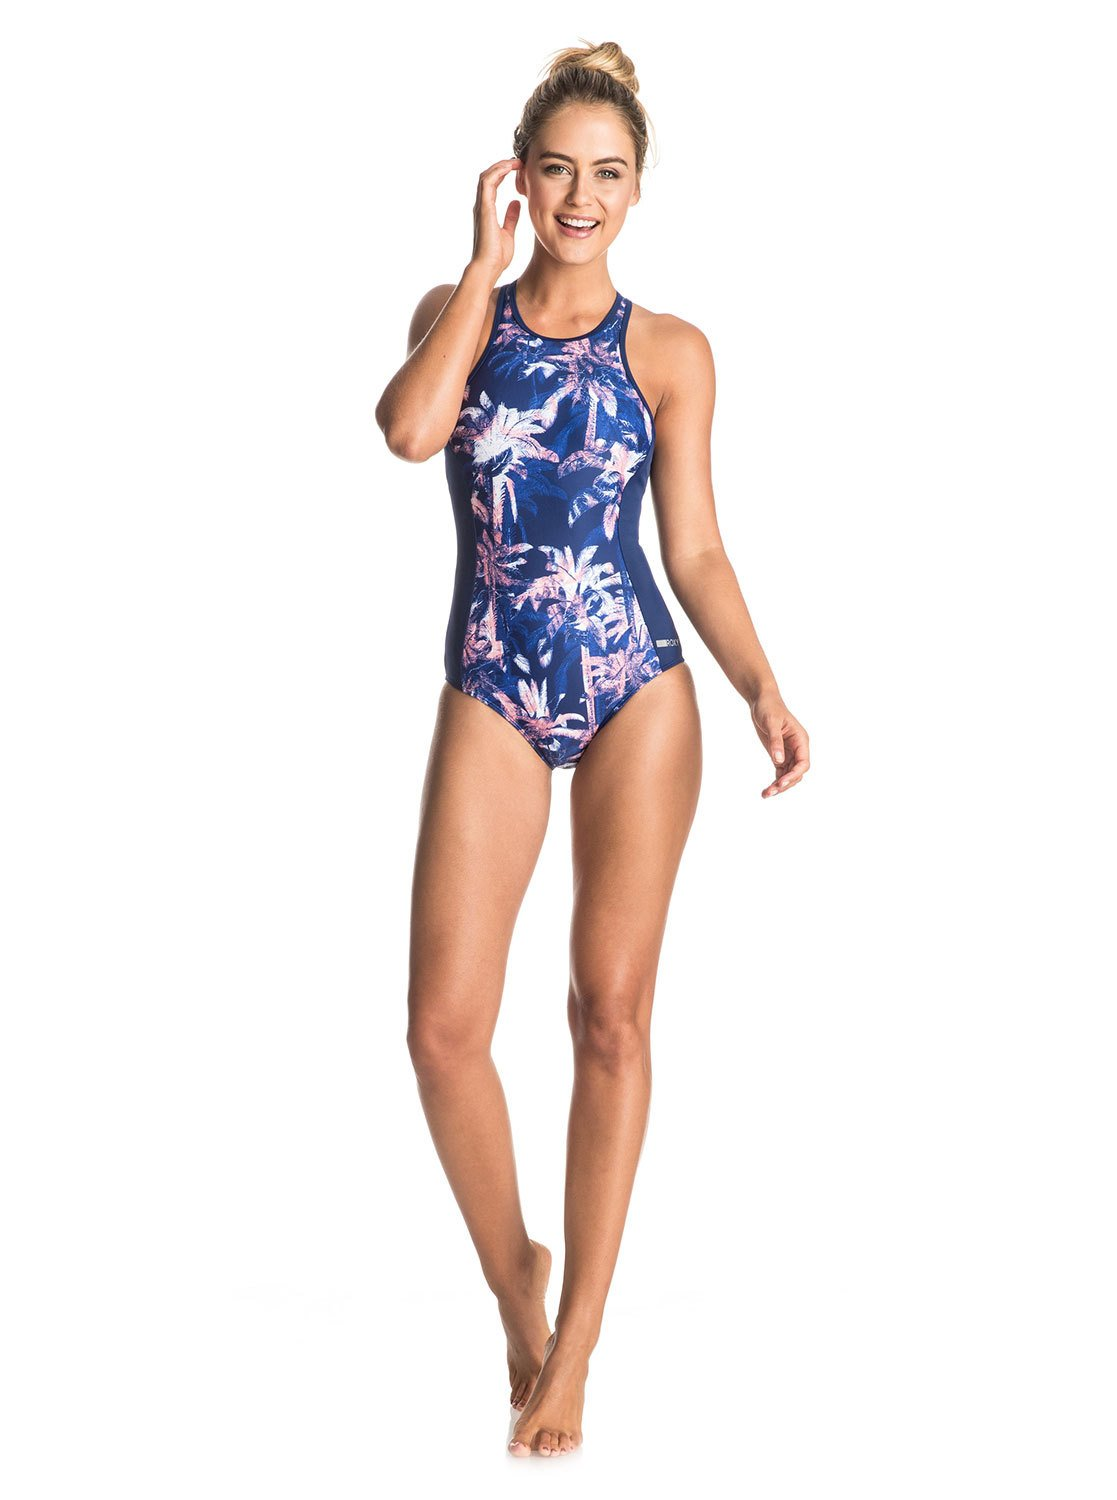 ff4be70de8c13 2 Keep It ROXY - Back Zip One-Piece Swimsuit ERJX103060 Roxy